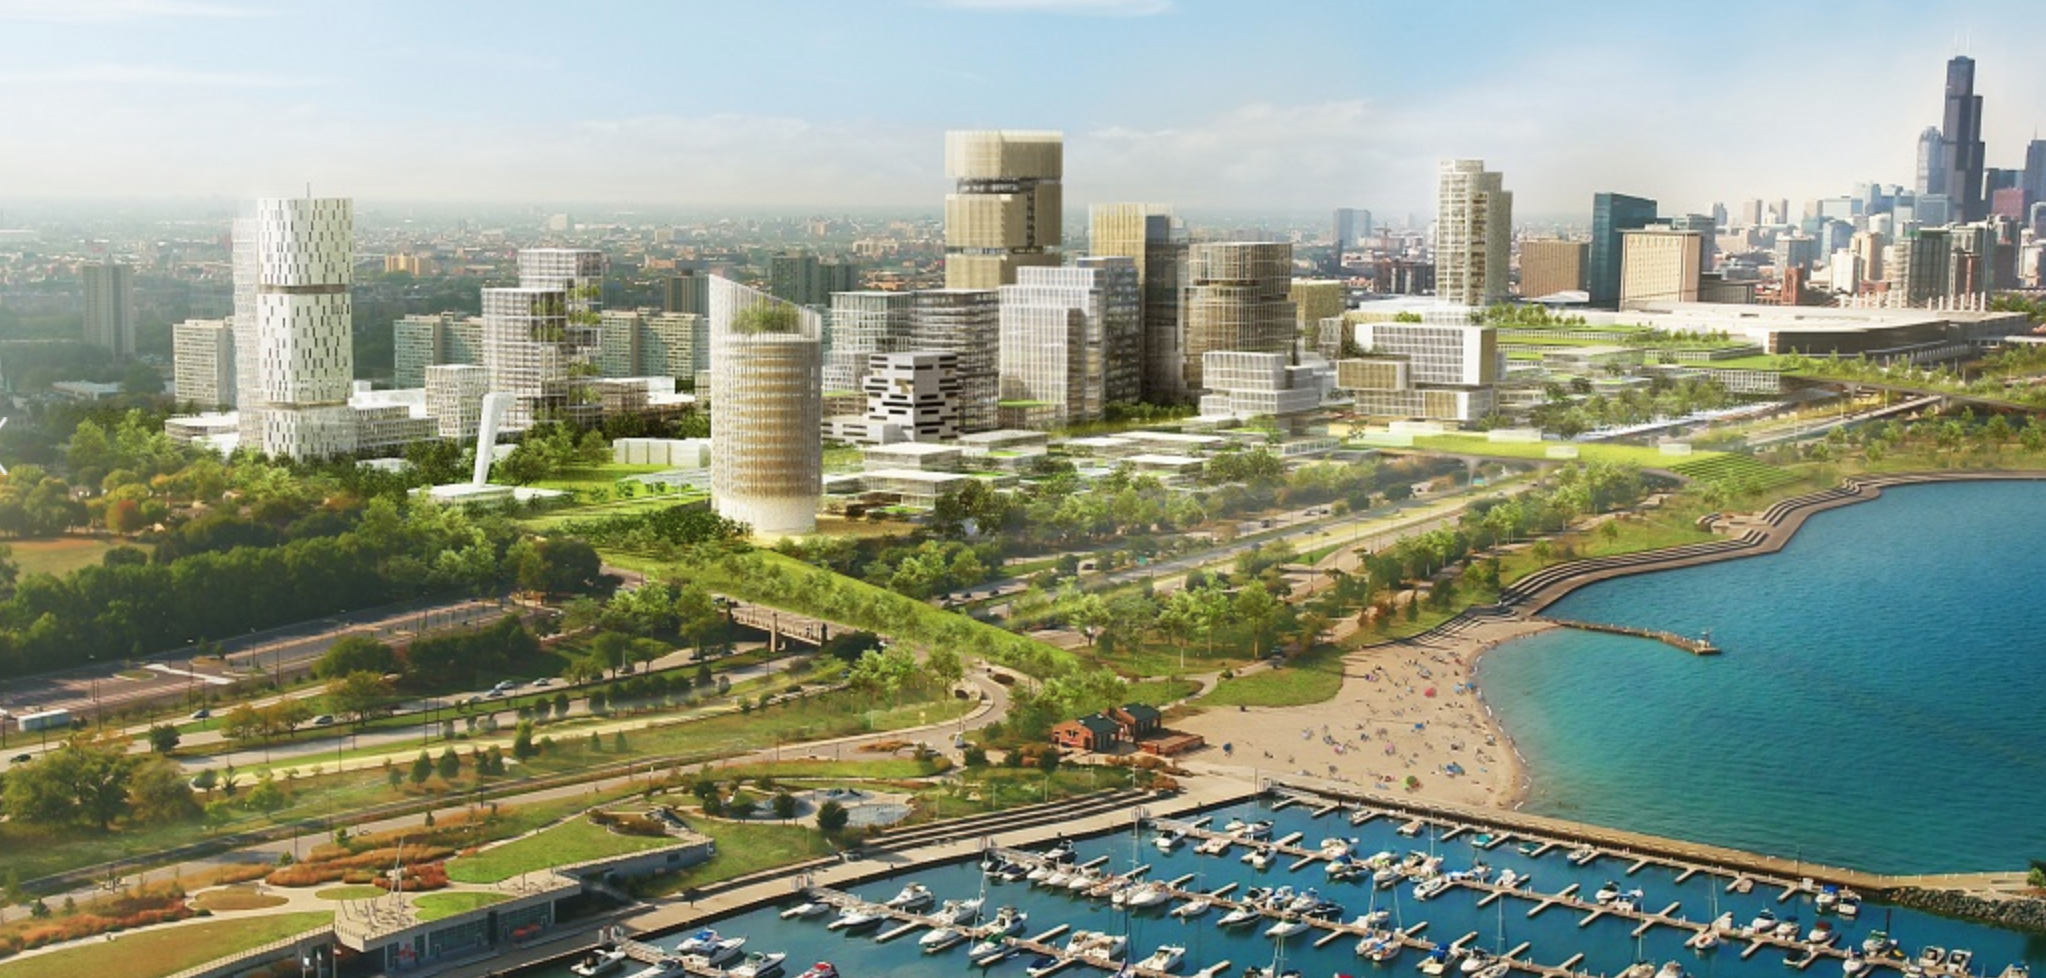 A plan years in the making for a $4 billion multi-use development at the site of the former Michael Reese Hospital campus on the South Side was approved by the Chicago City Council on Wednesday, July 21, 2021.